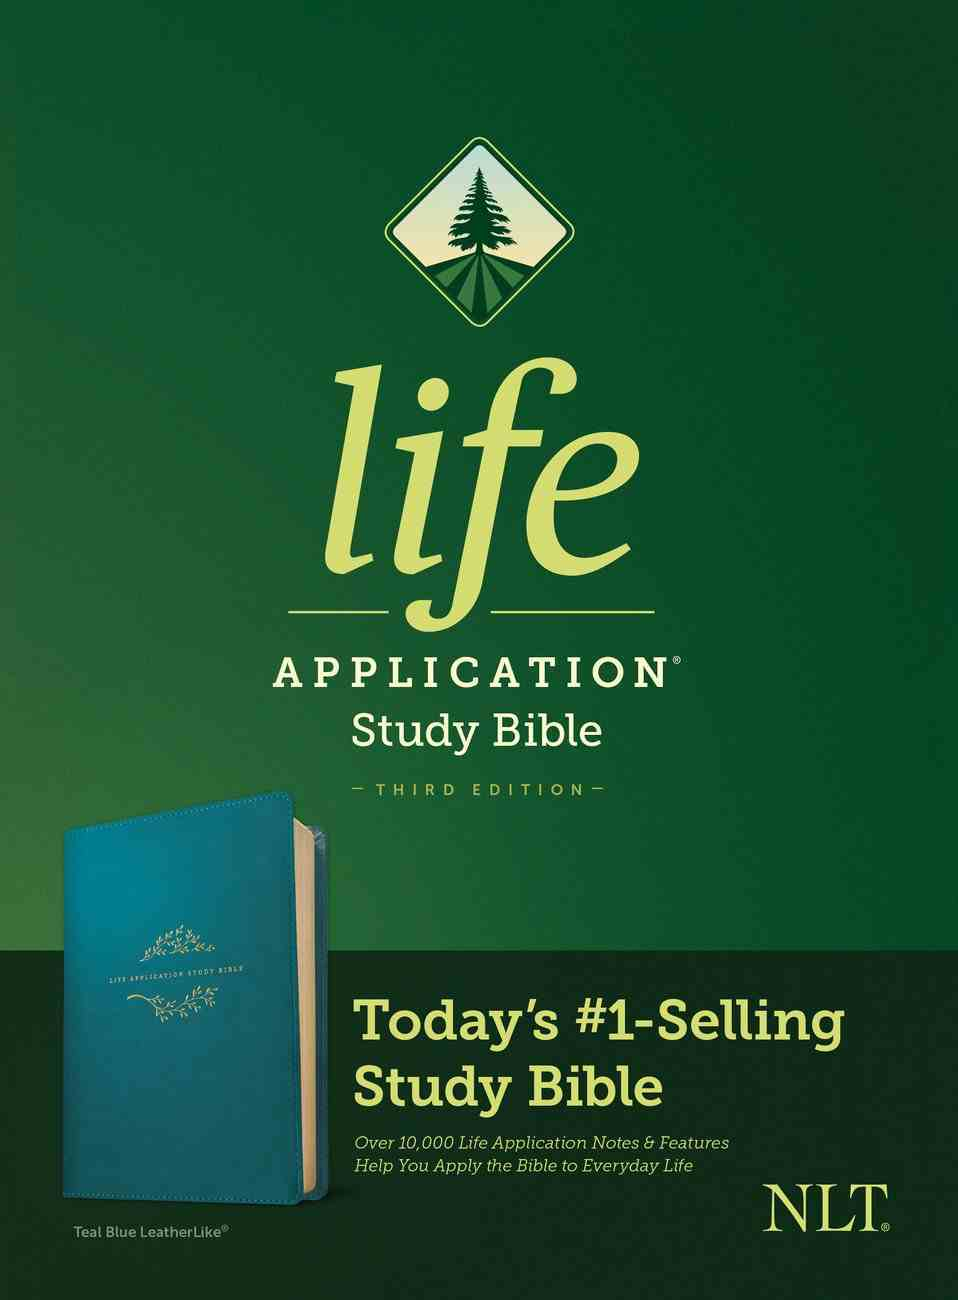 NLT Life Application Study Bible 3rd Edition Teal Blue (Black Letter Edition) Imitation Leather